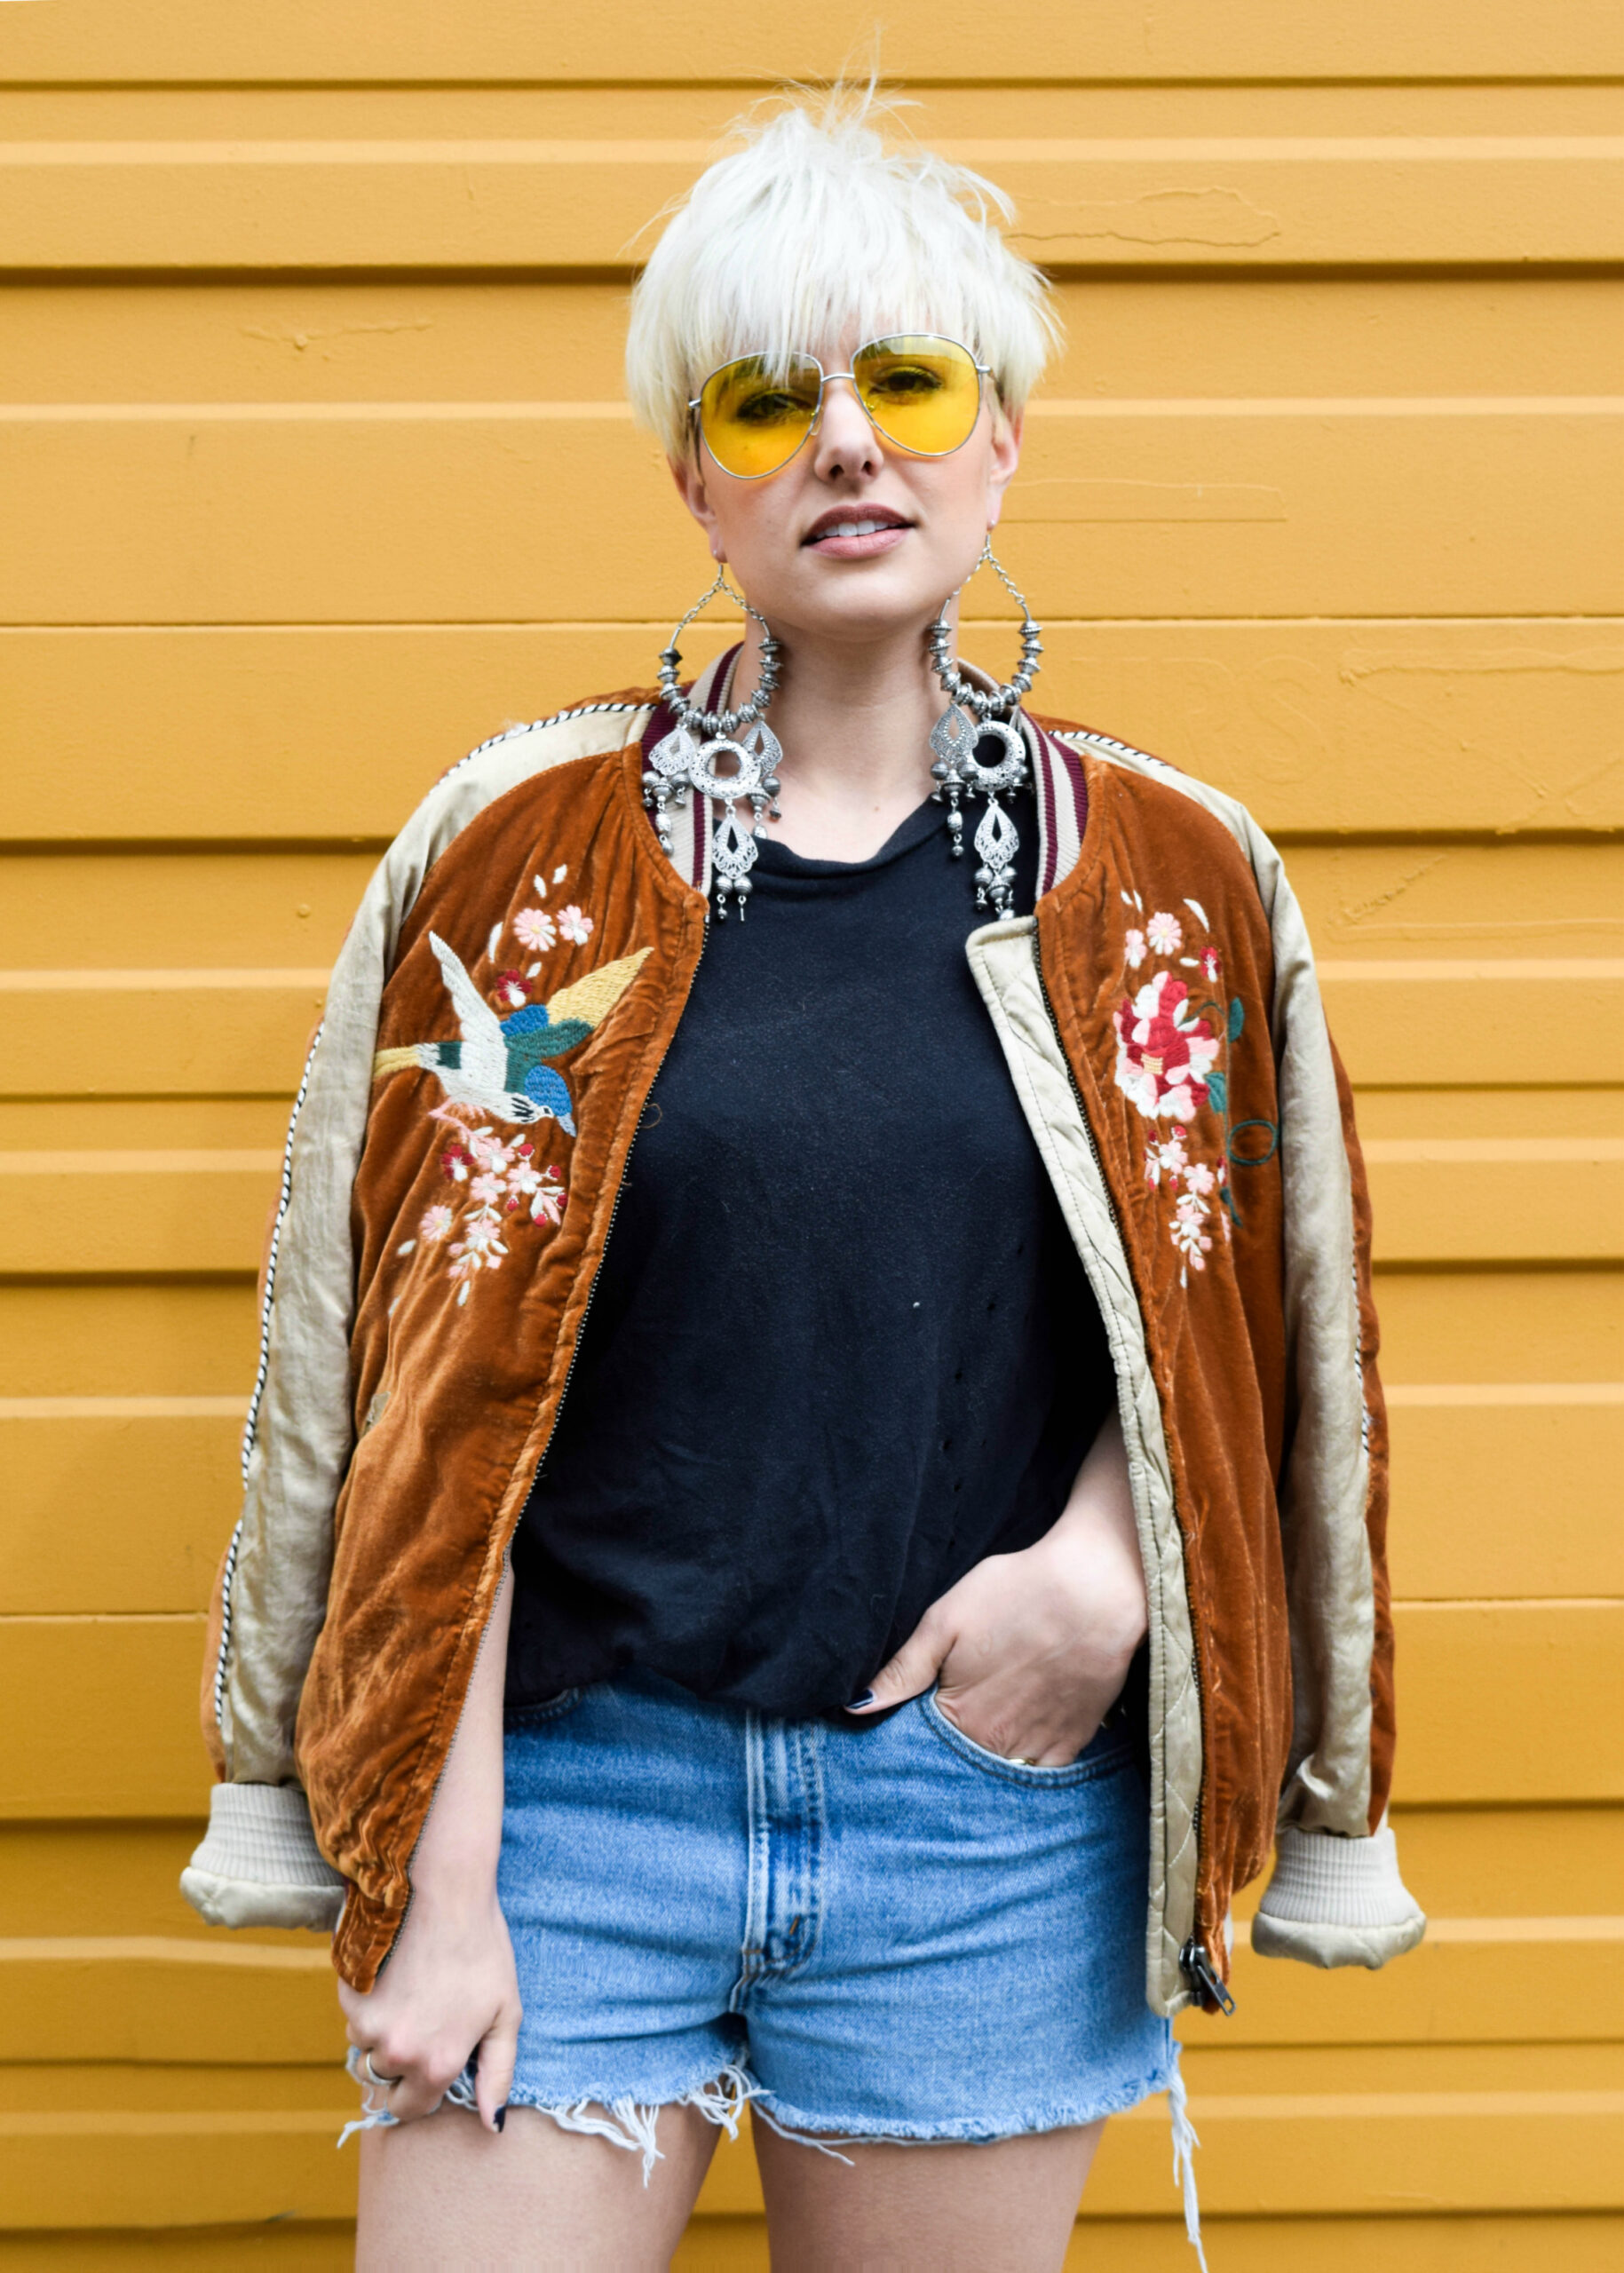 Festival Ready 2- 3 New Ways to Wear Your Bomber Jacket for 2017 - BloggerNotBillionaire.com